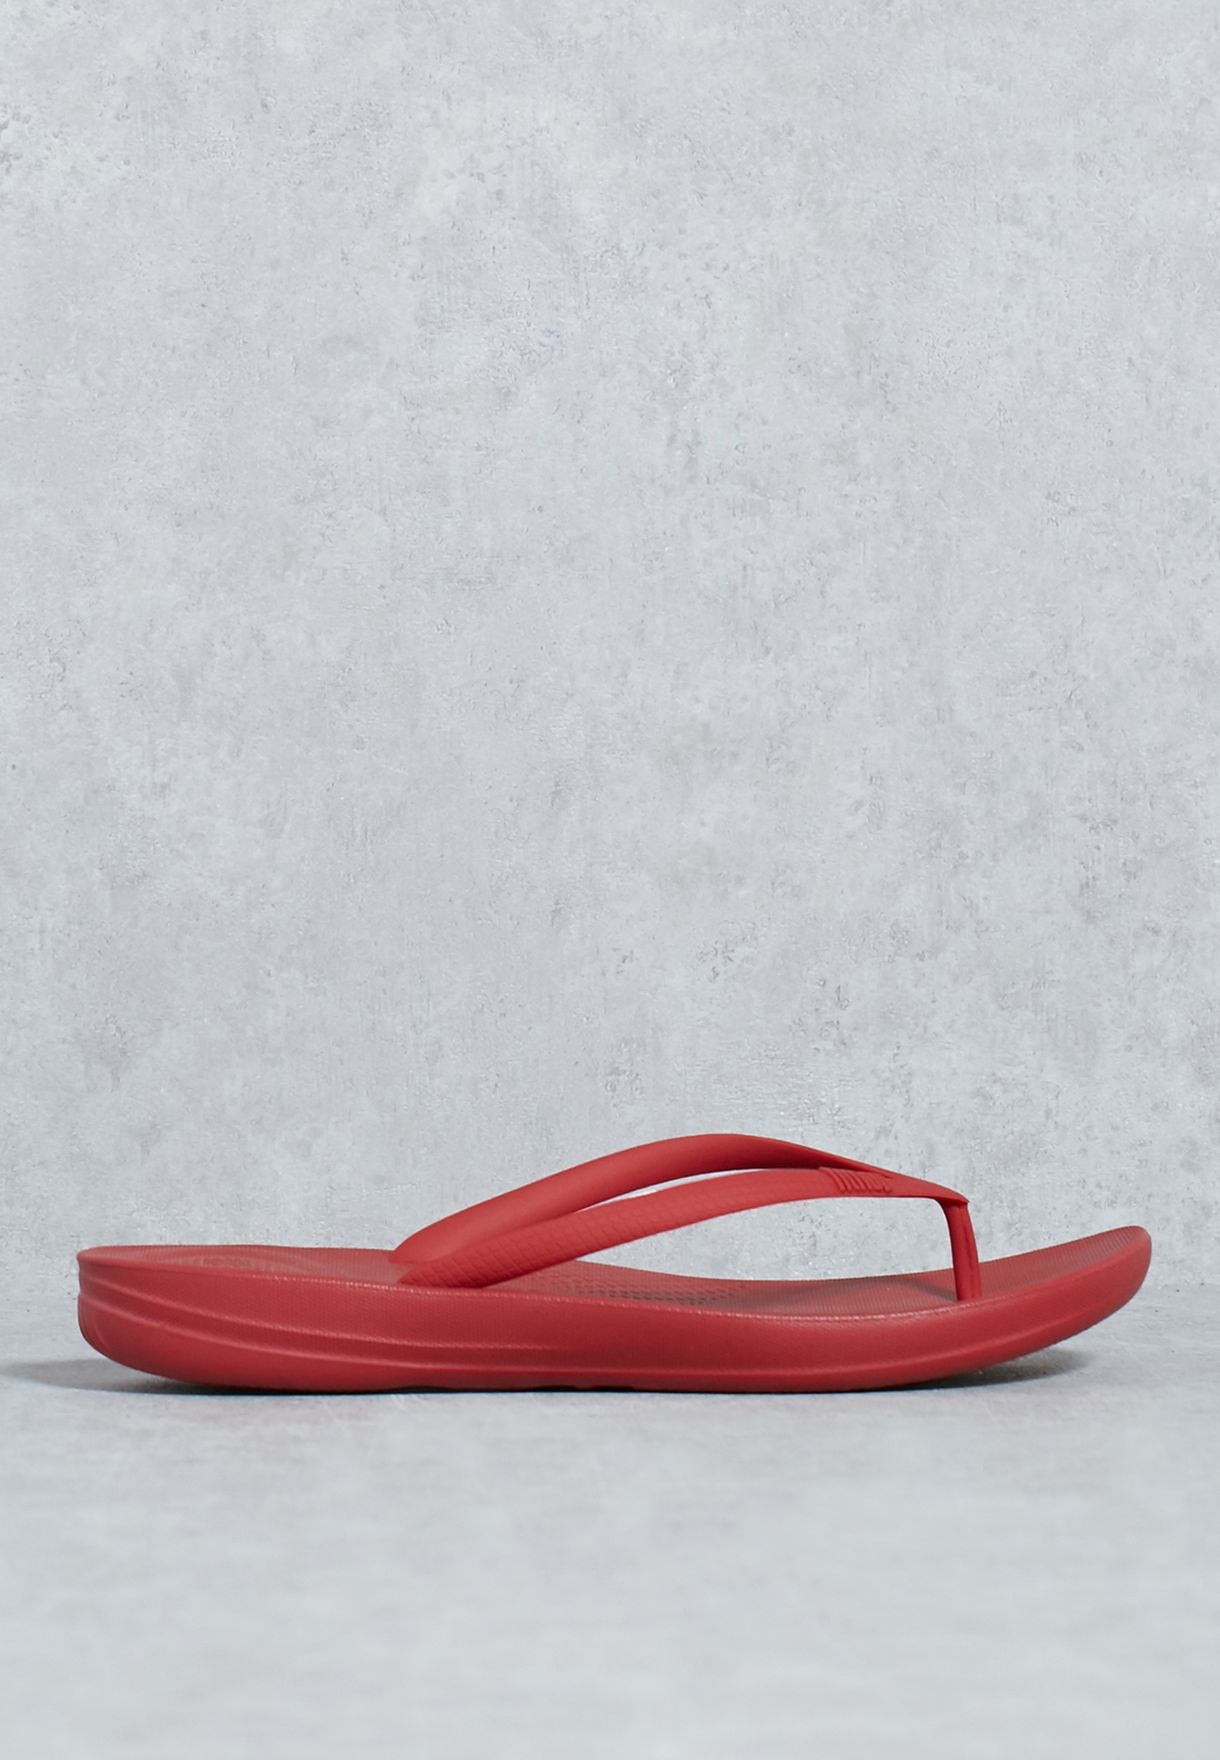 9d65afae9ce27 Shop Fitflop red Iqushion Ergonomic Flip-Flops E54-203 for Women in ...